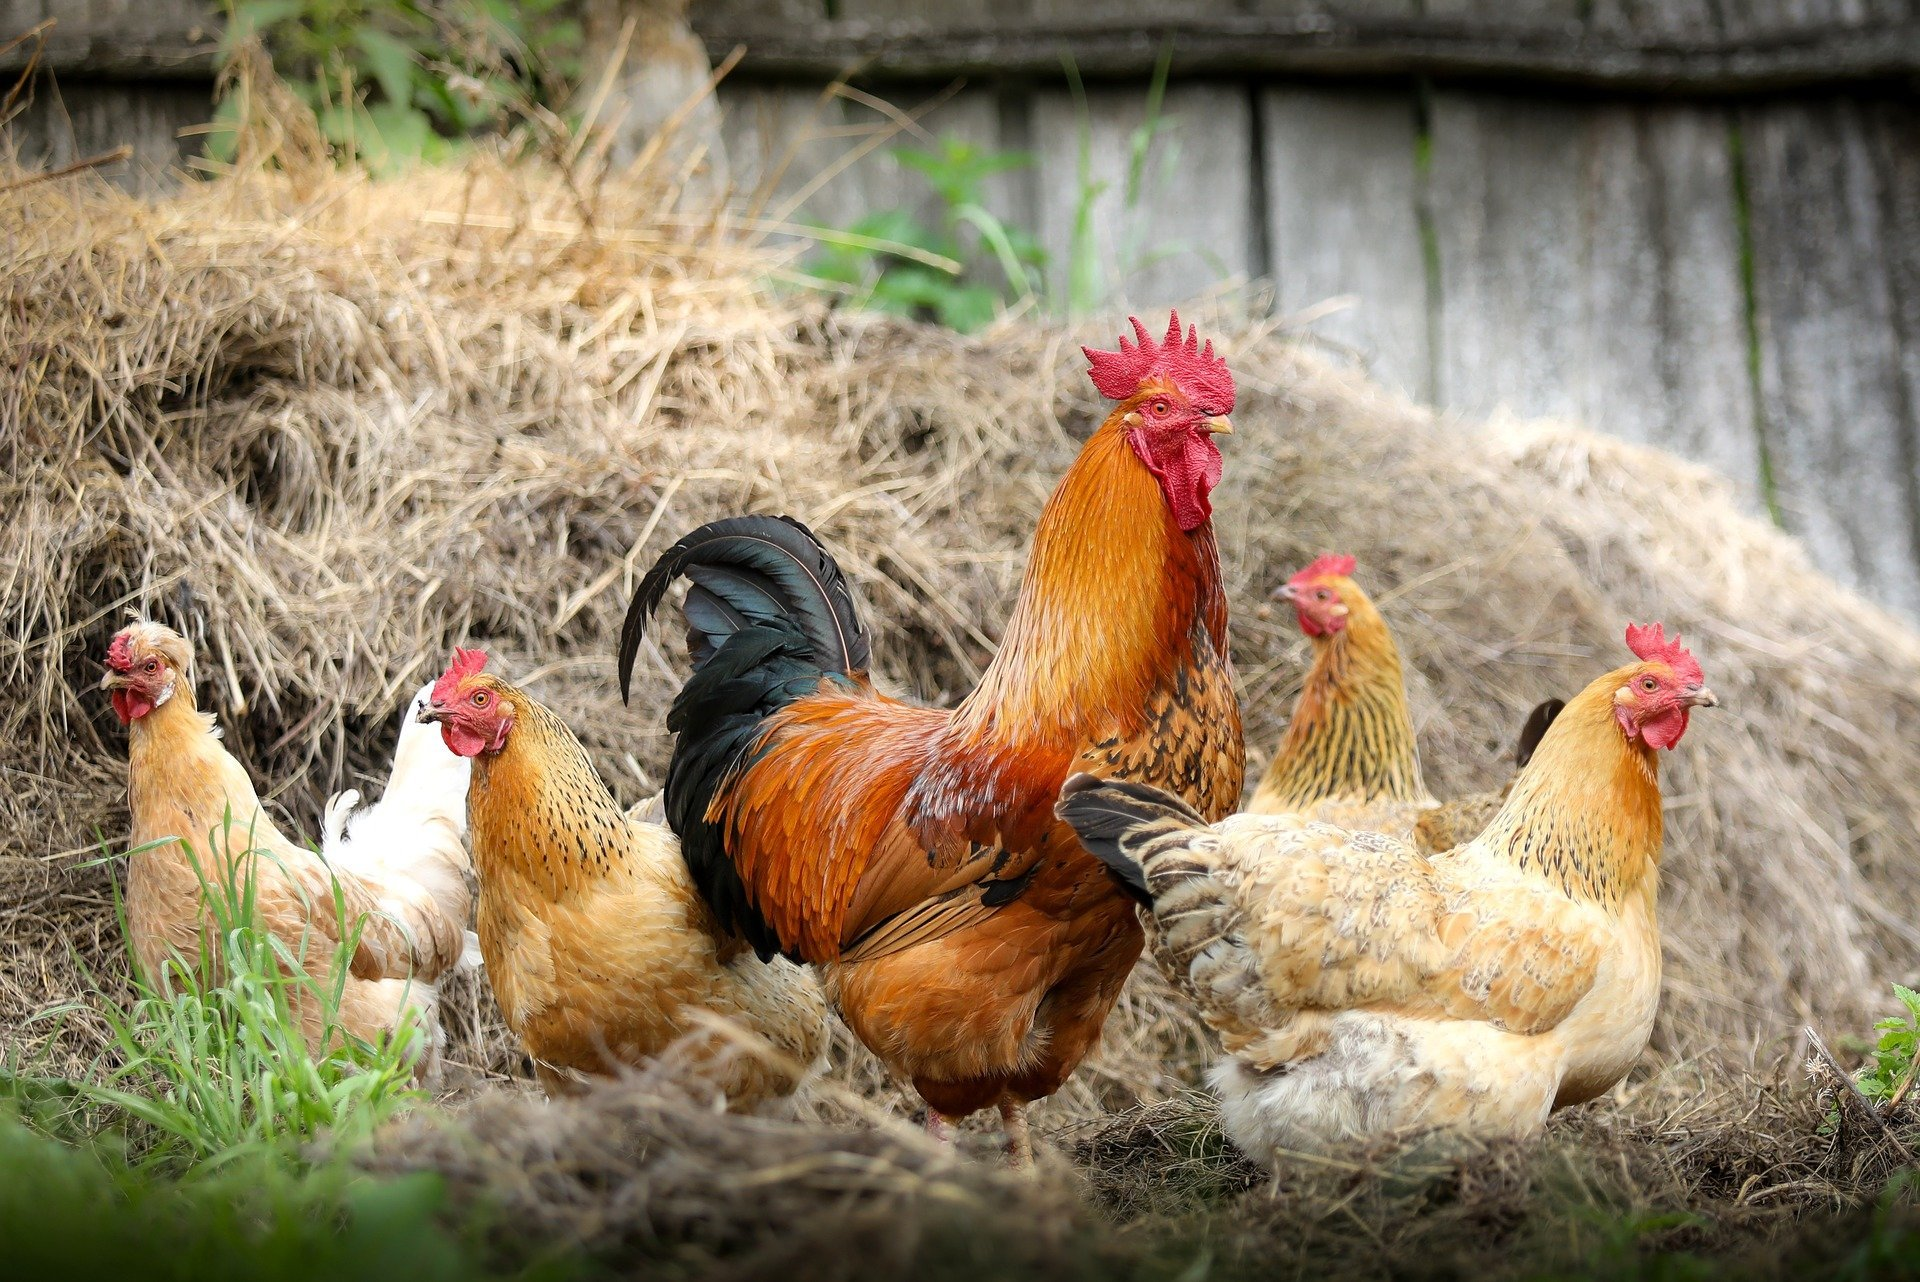 Small-scale poultry farming could mean big problem in developing countries